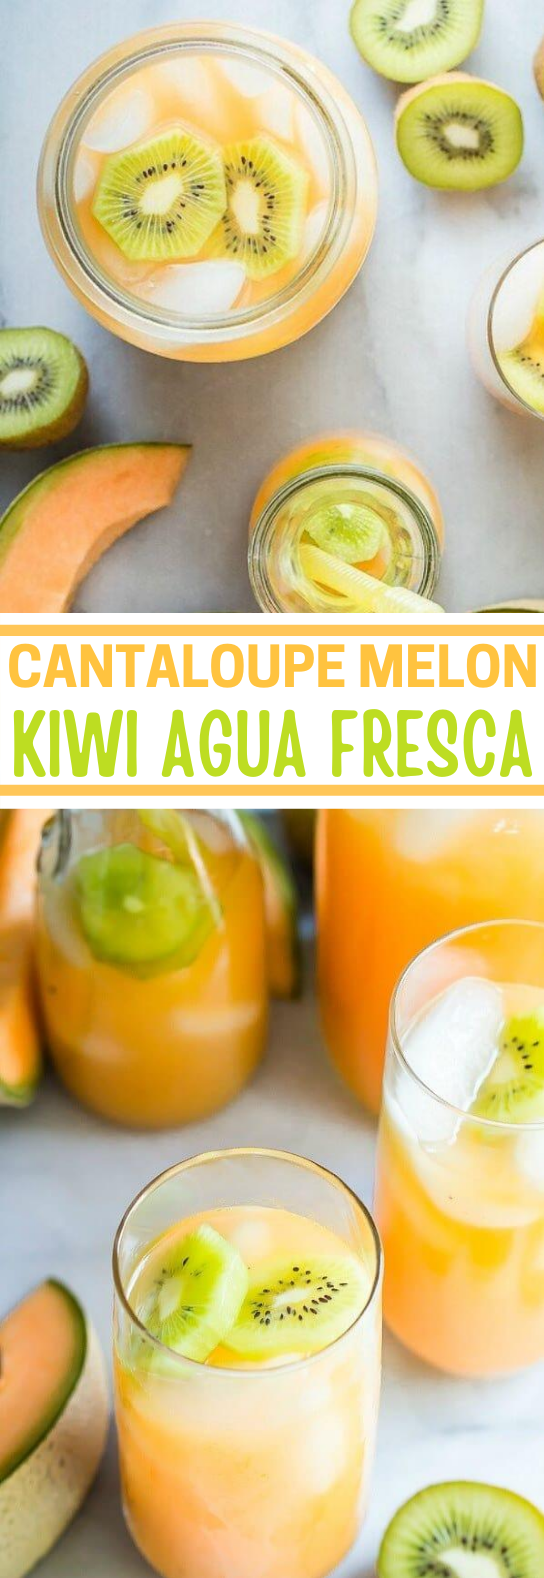 Cantaloupe Melon and Kiwi Agua Fresca #summer #drink #cocktail #beverages #brunch